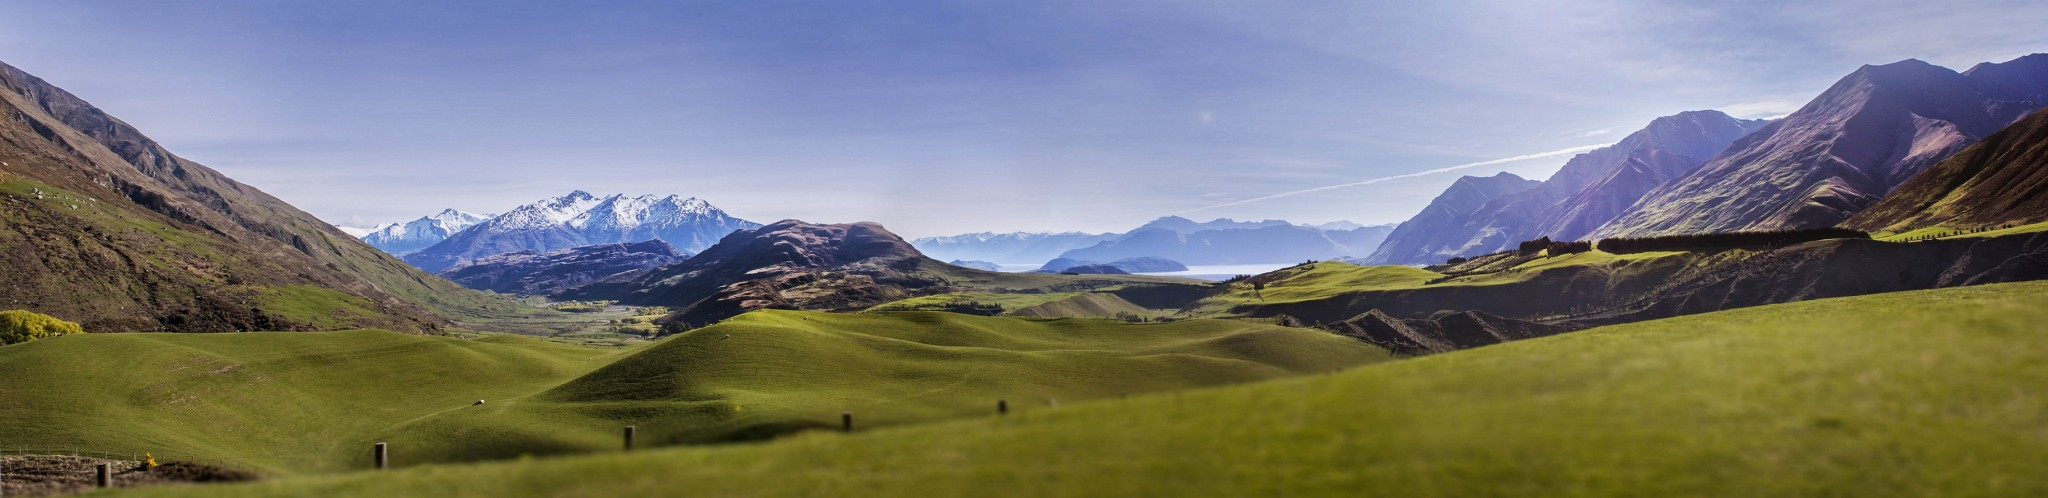 a-panoramic-view-of-the-550sq-km-of-land-at-mahu-whenua-ridgeline-homest